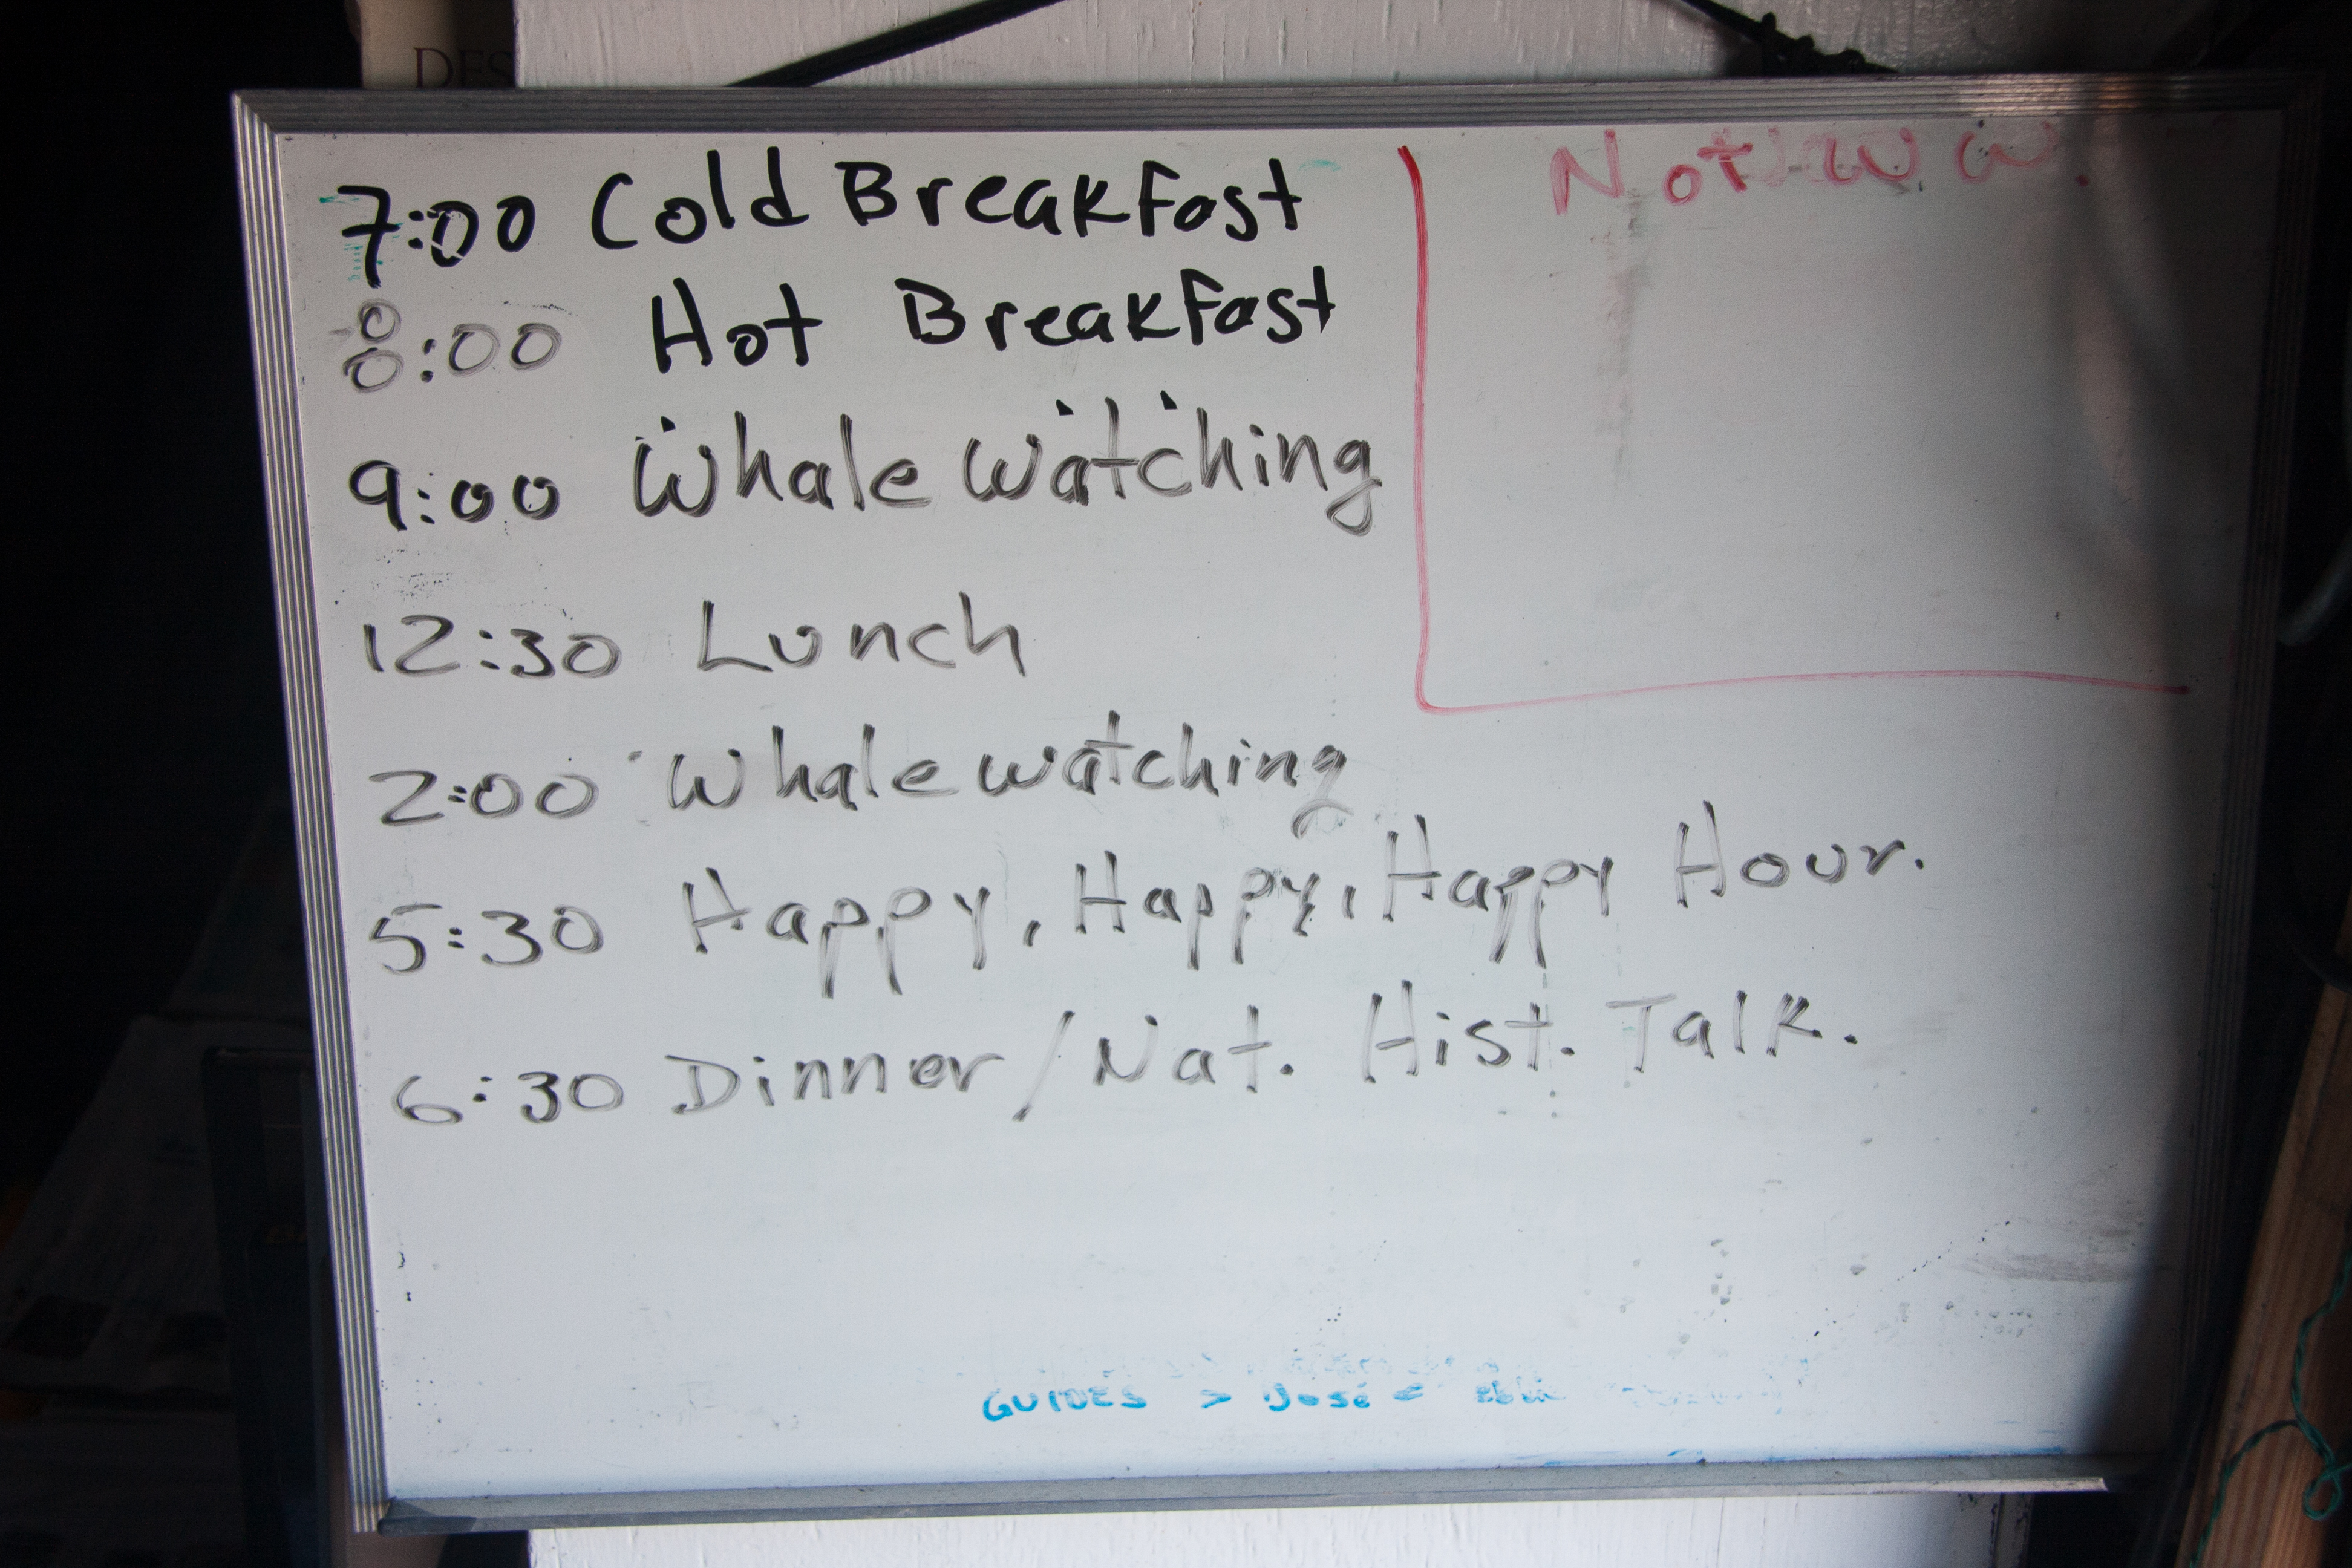 White board with a day schedule